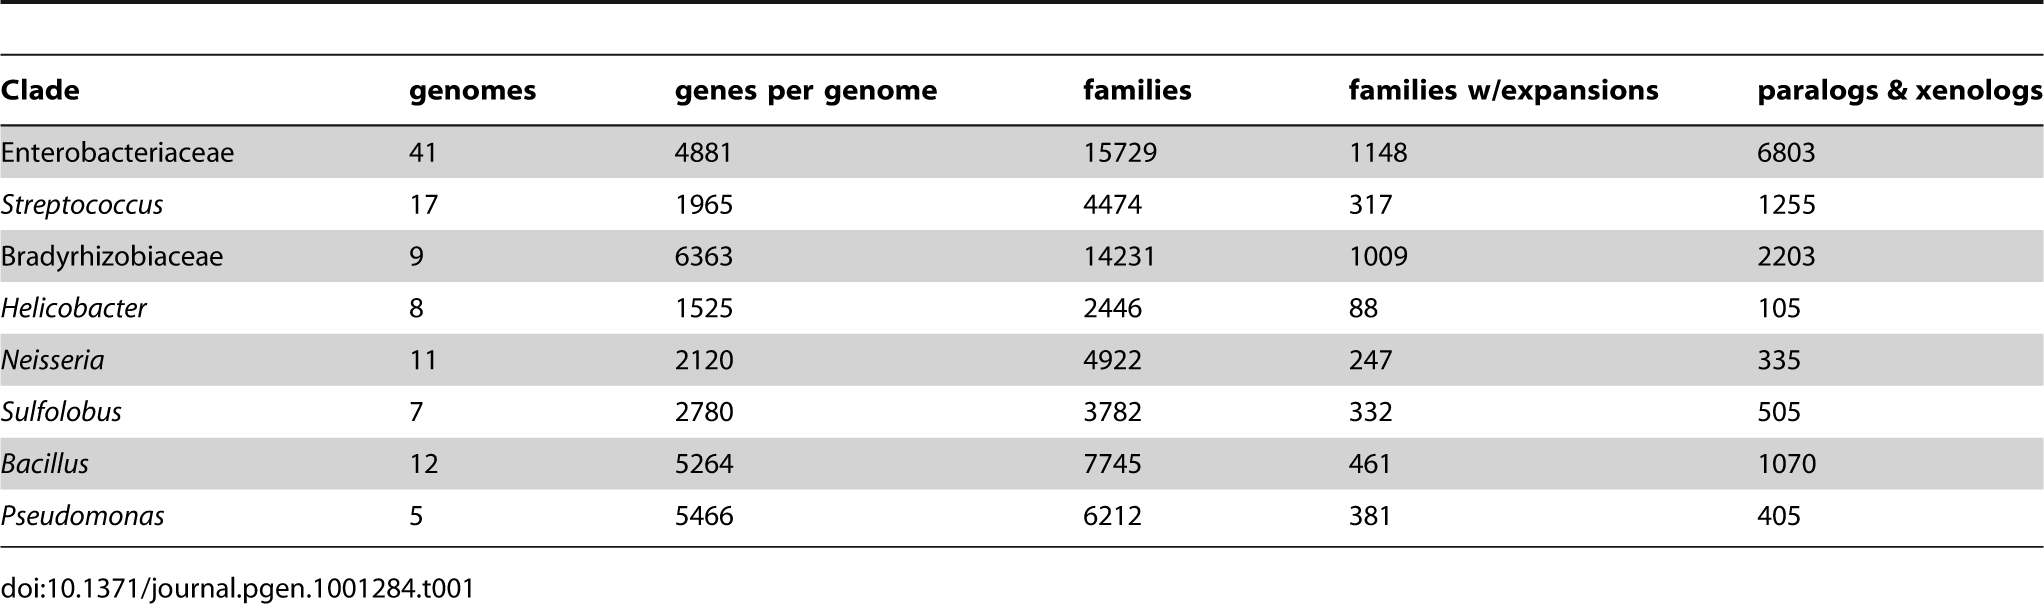 Expansions of gene families.